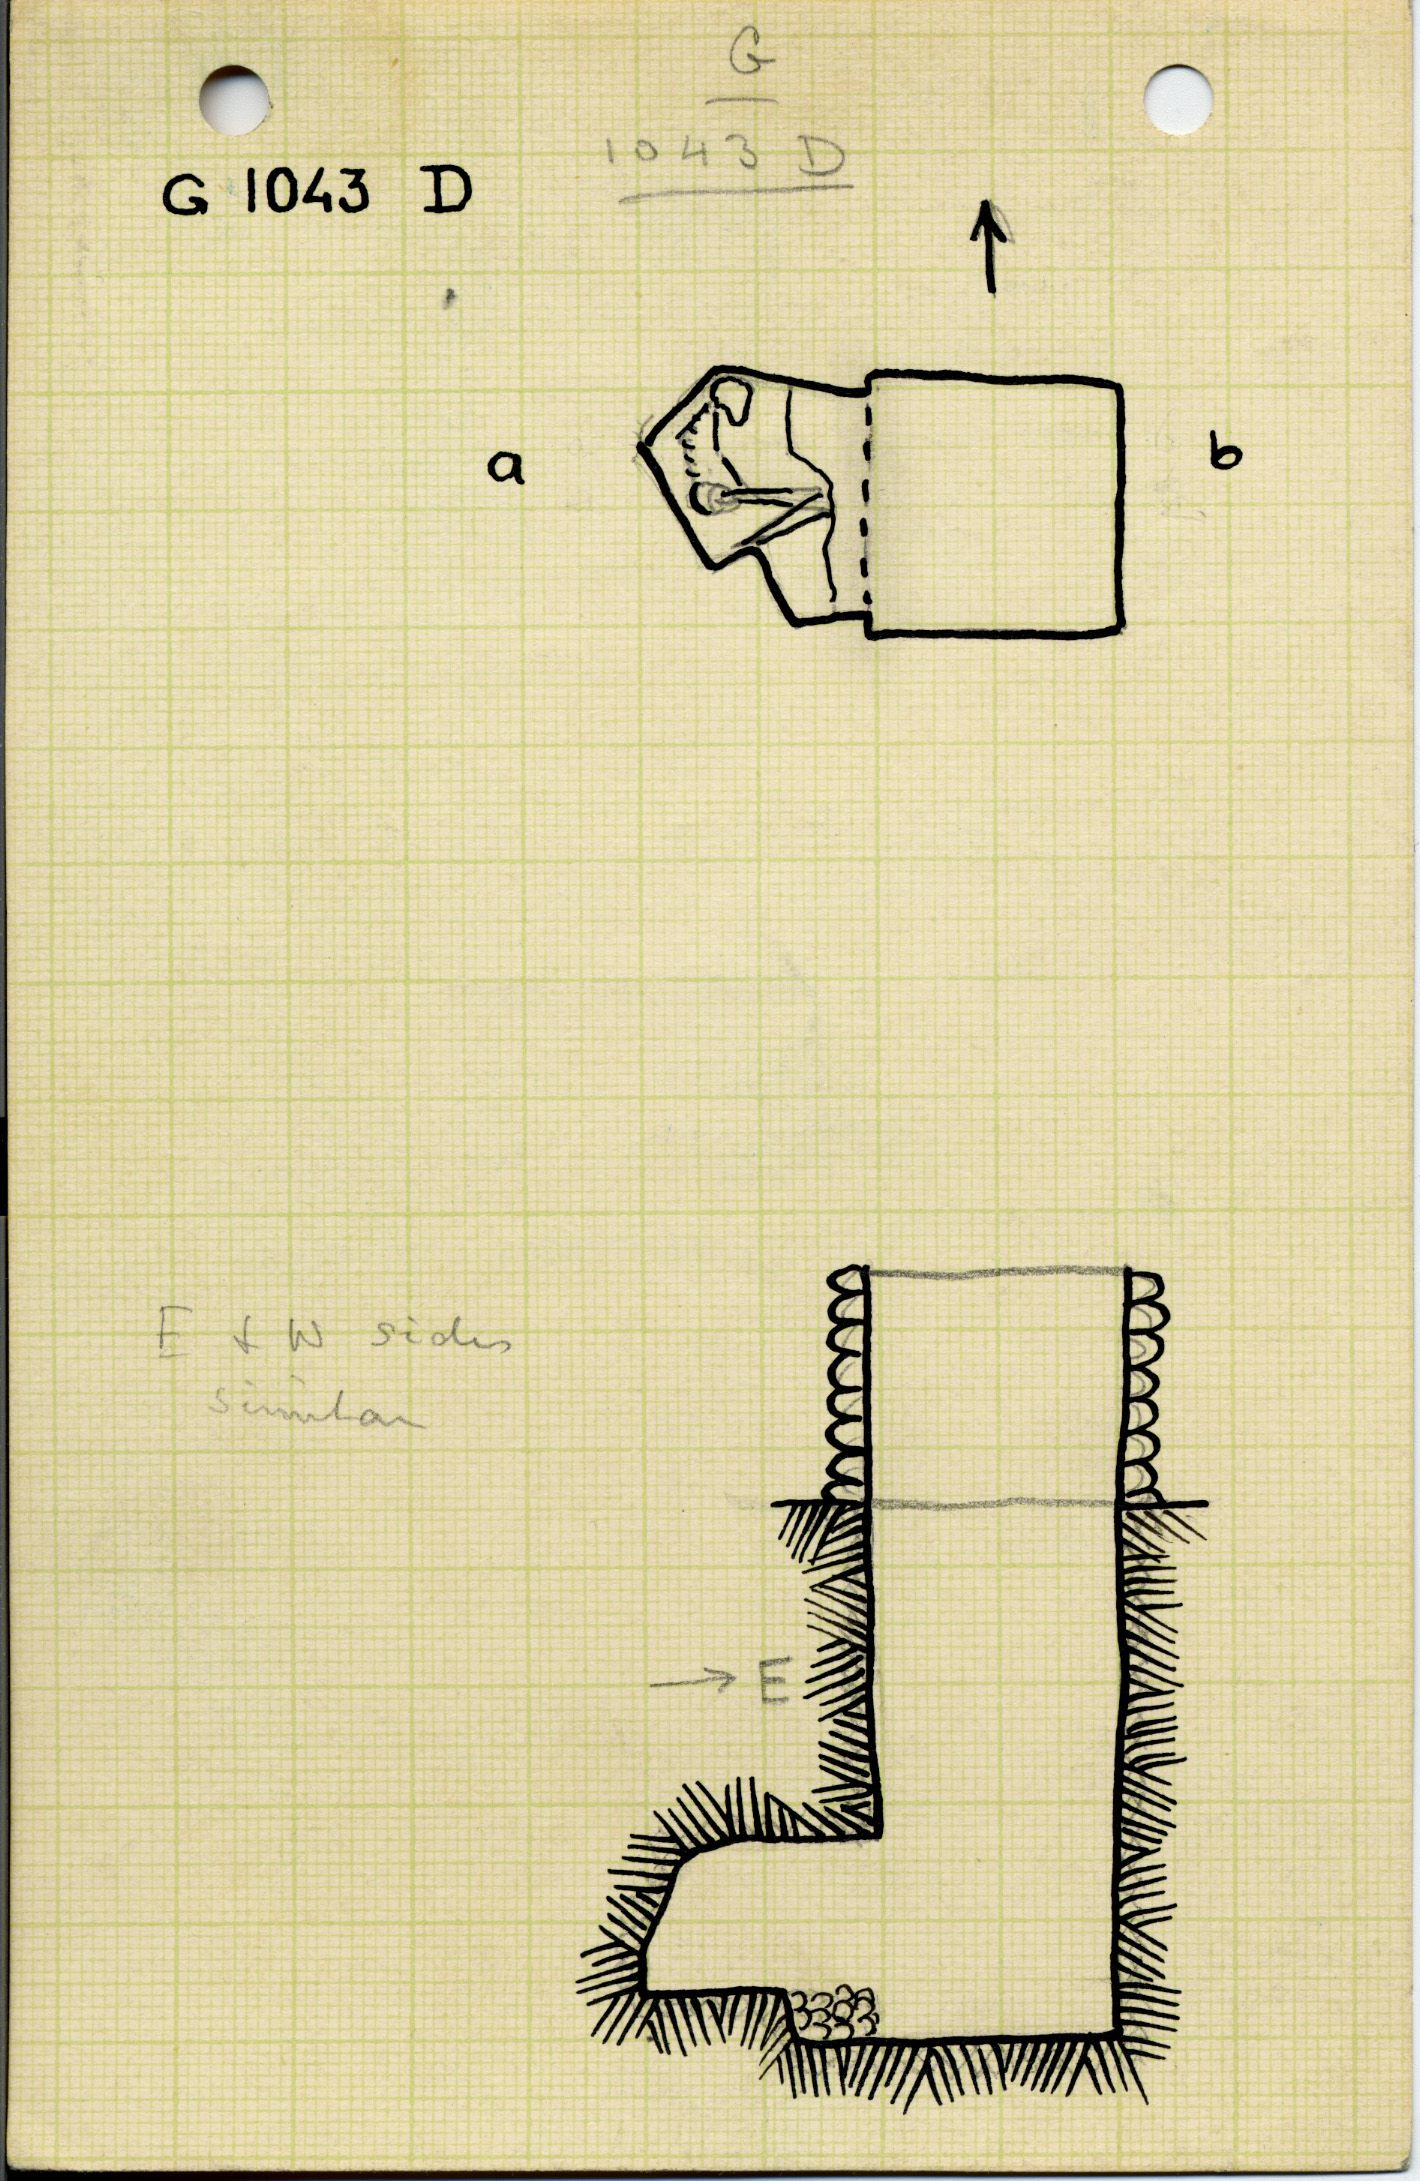 Maps and plans: G 1043, Shaft D